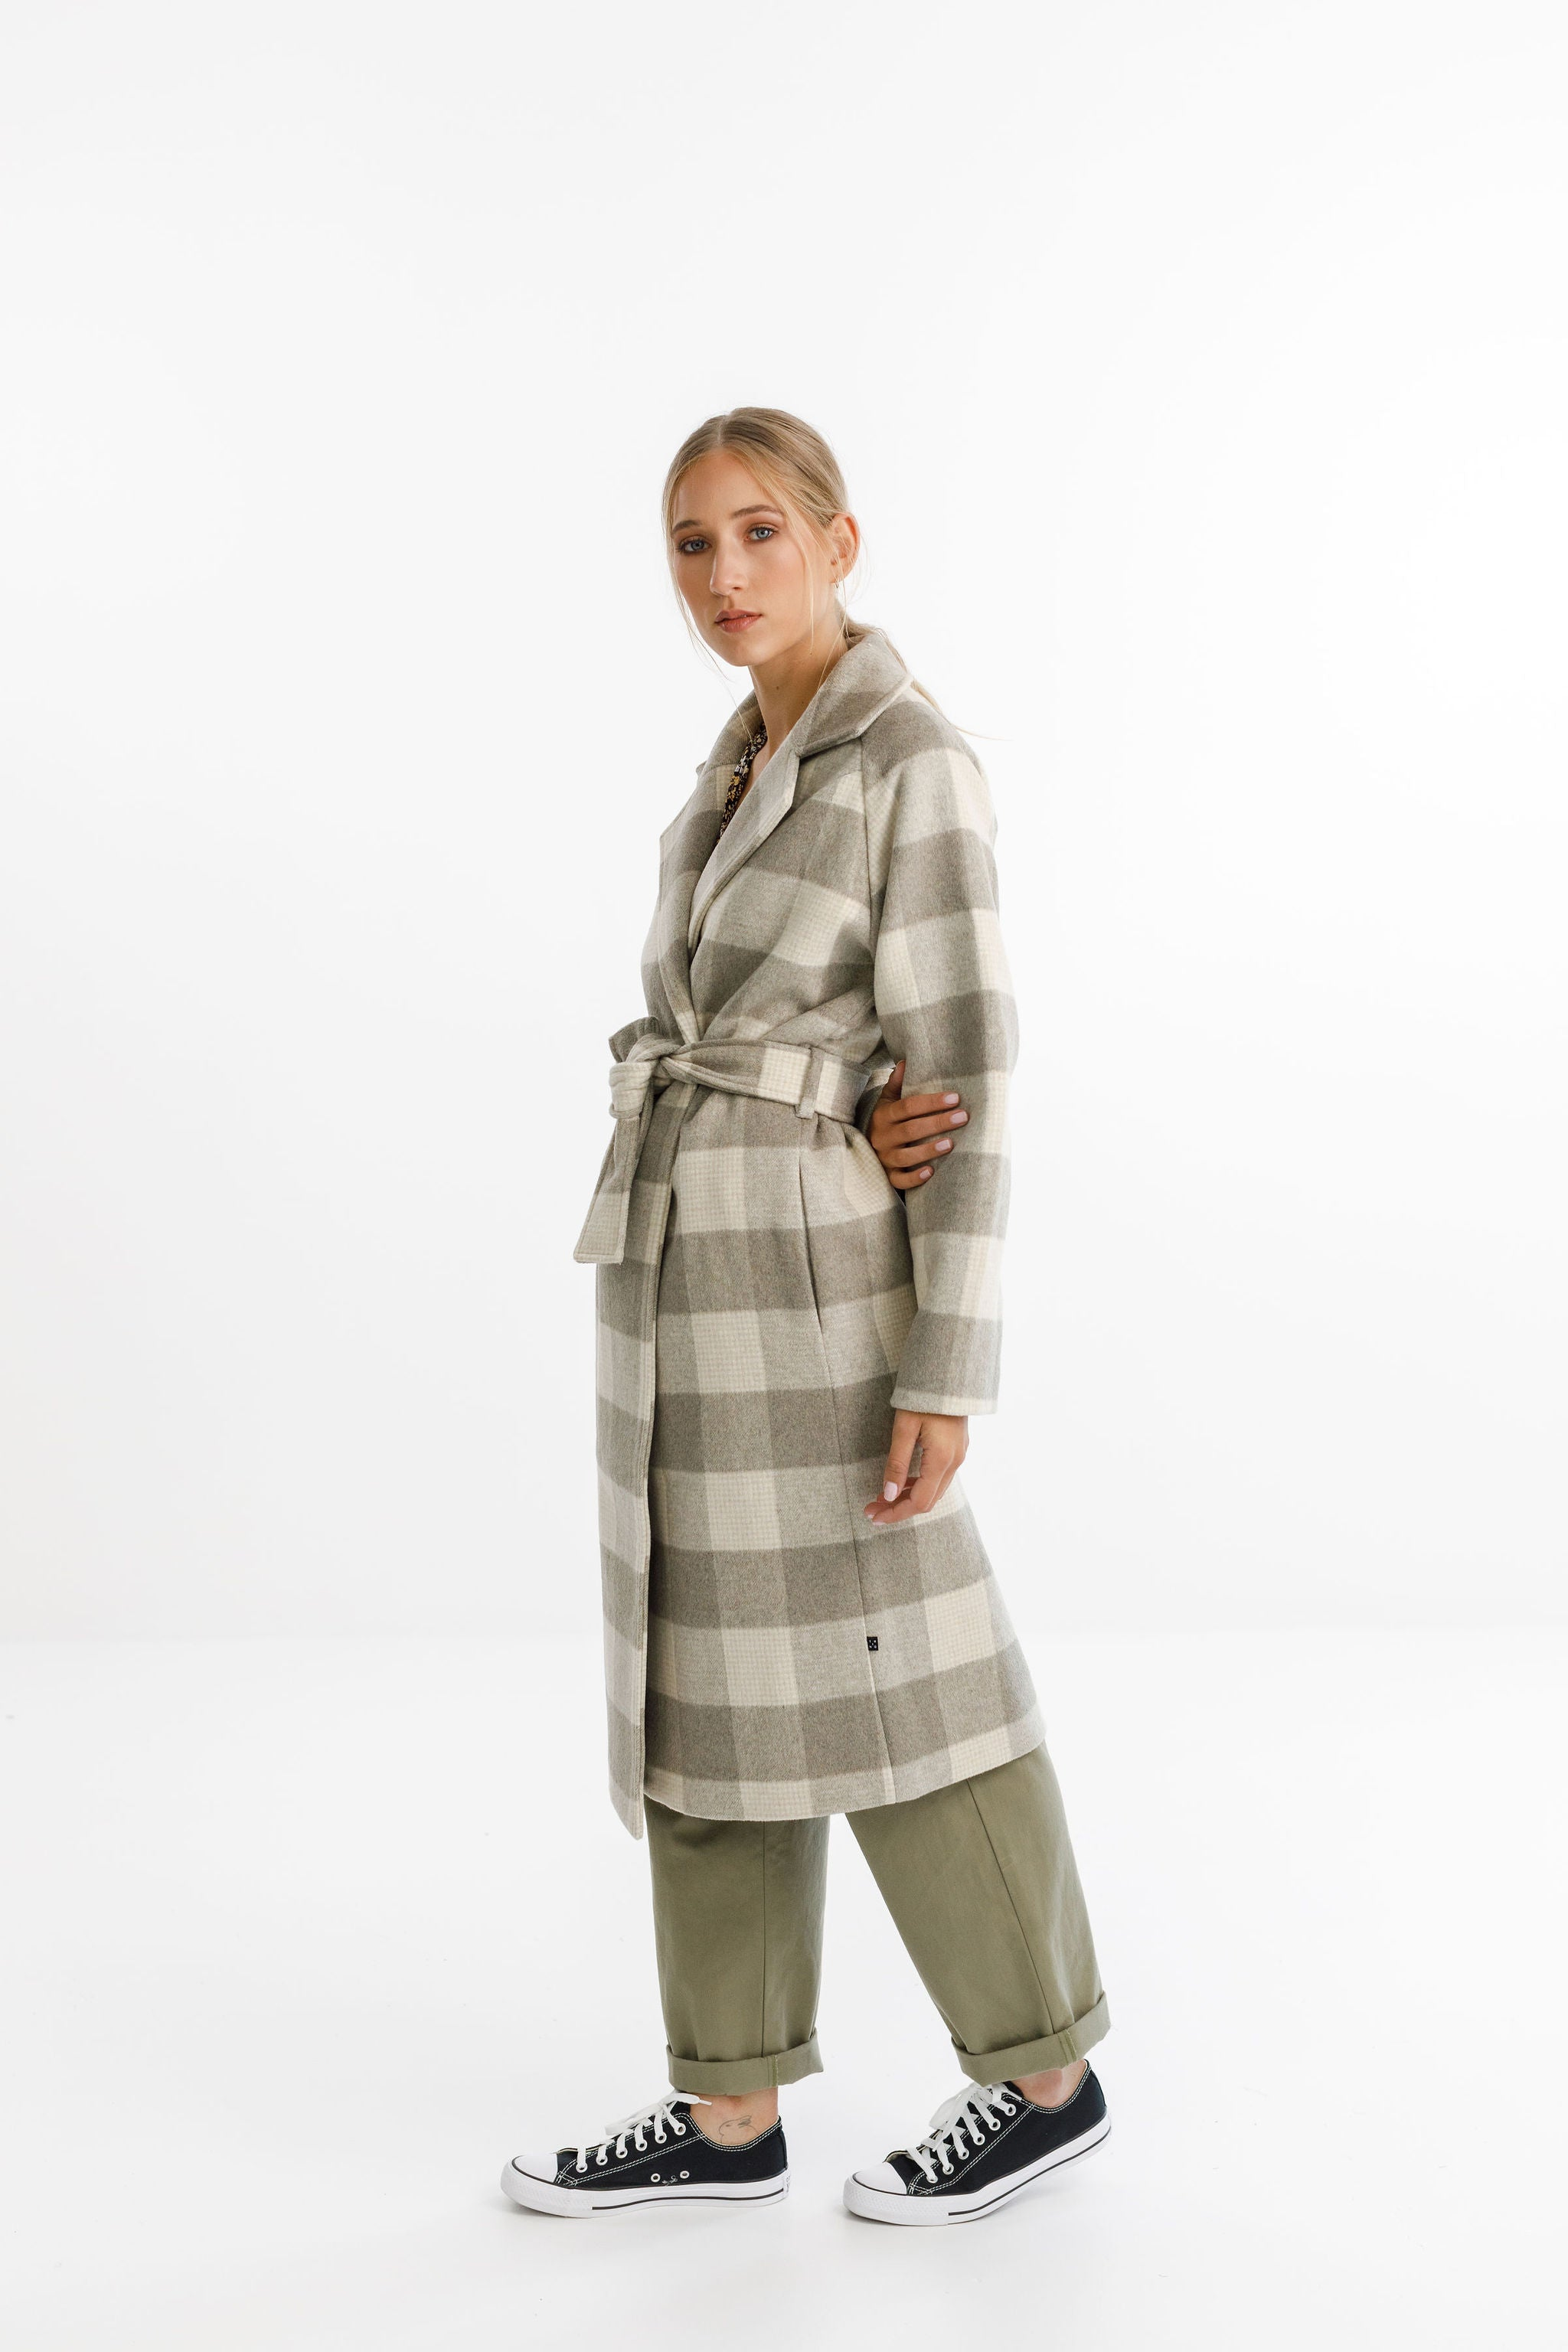 CLEMENT COAT - Soft Check